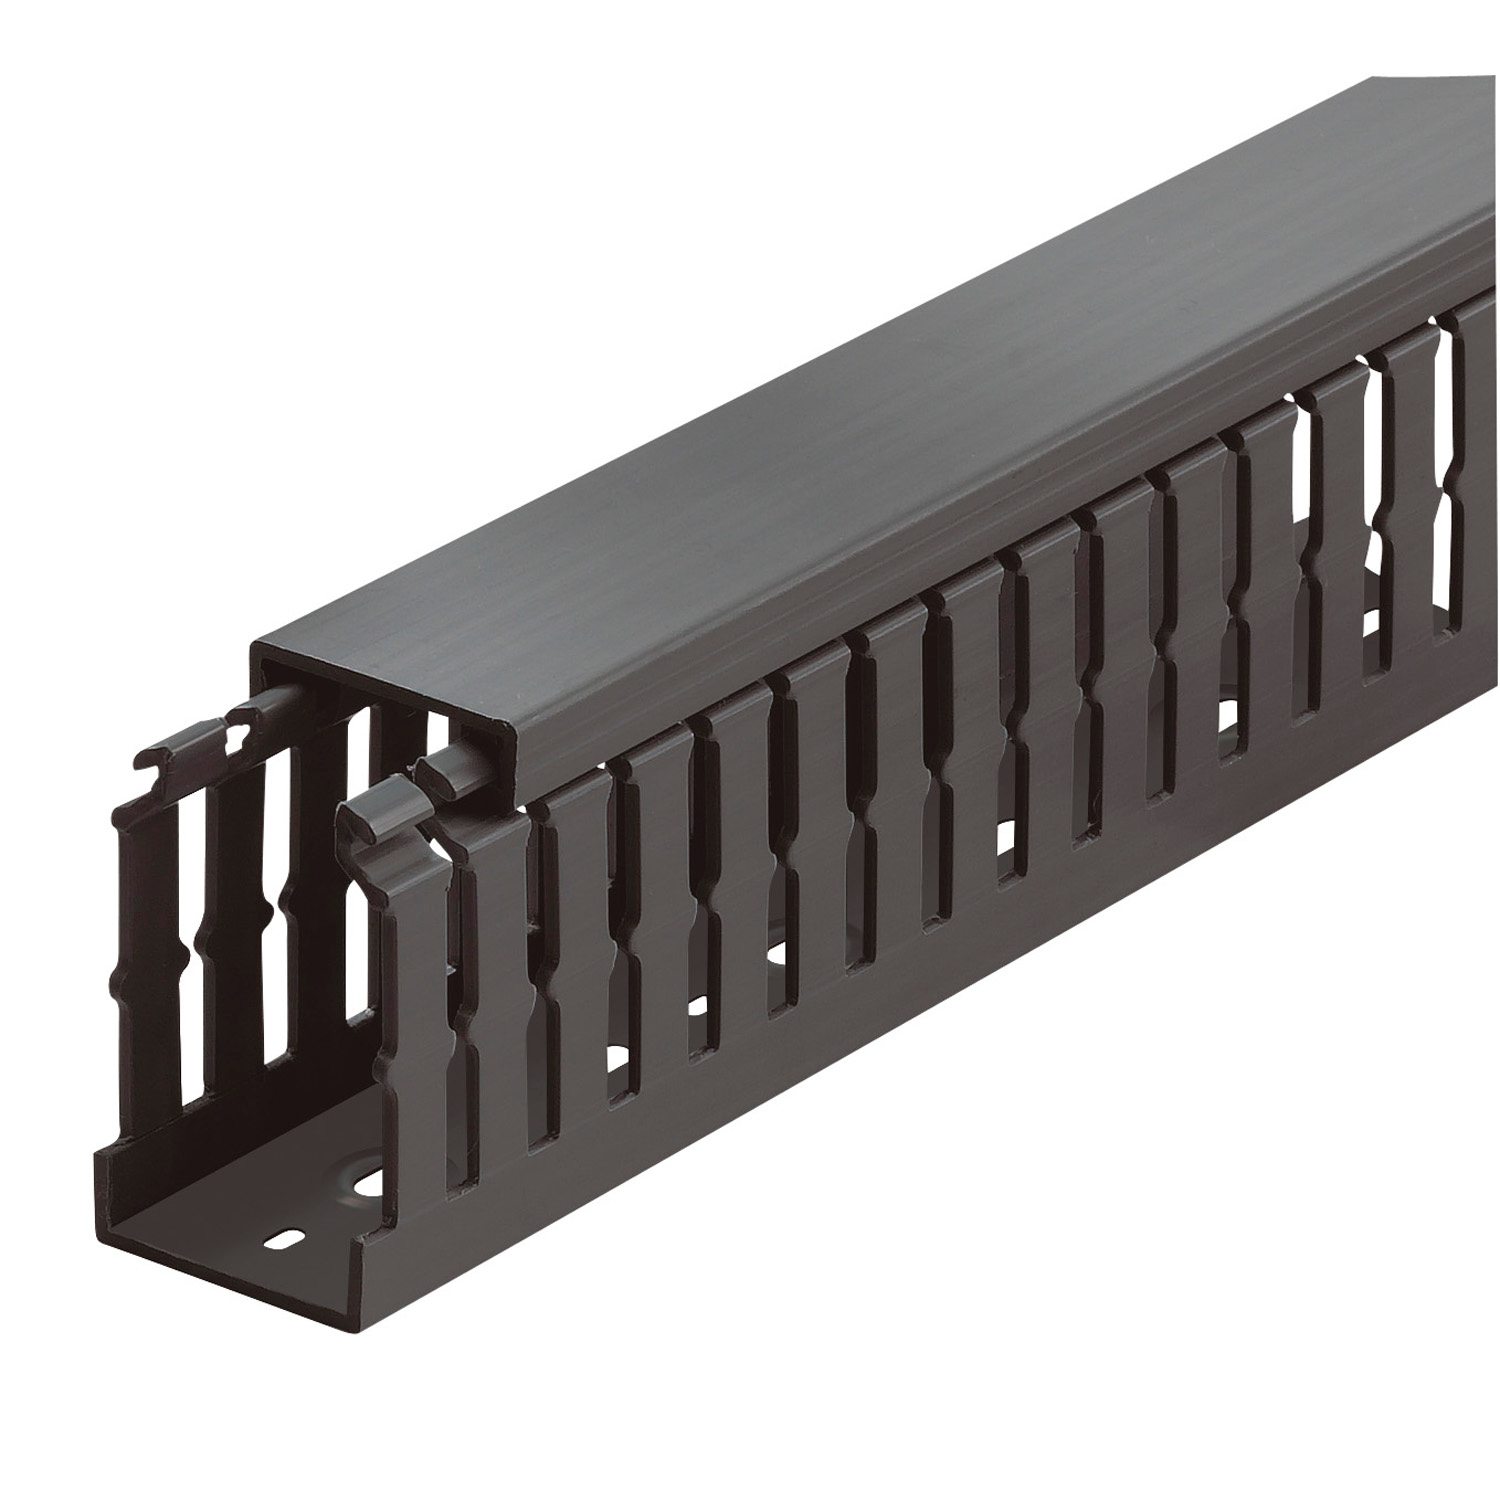 For the cable duct floor strip for the